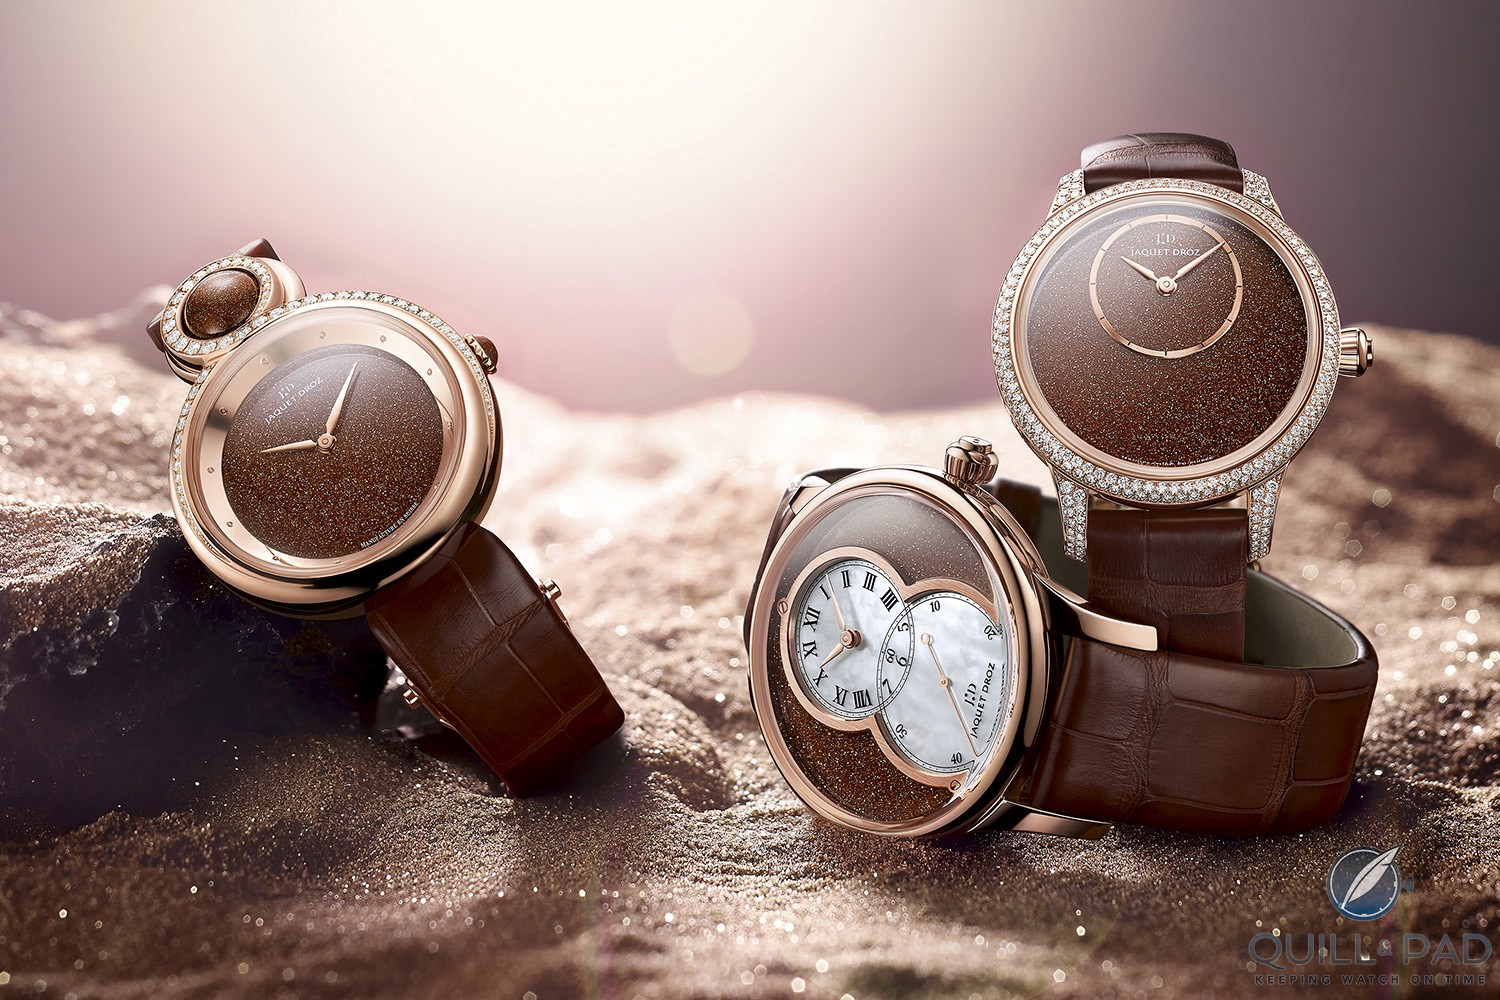 Trio of Jaquet Droz Sunstone watches from 2015: (L to R) Lady 8, Grande Seconde Cerclée, Petite Heure Minute 35 mm